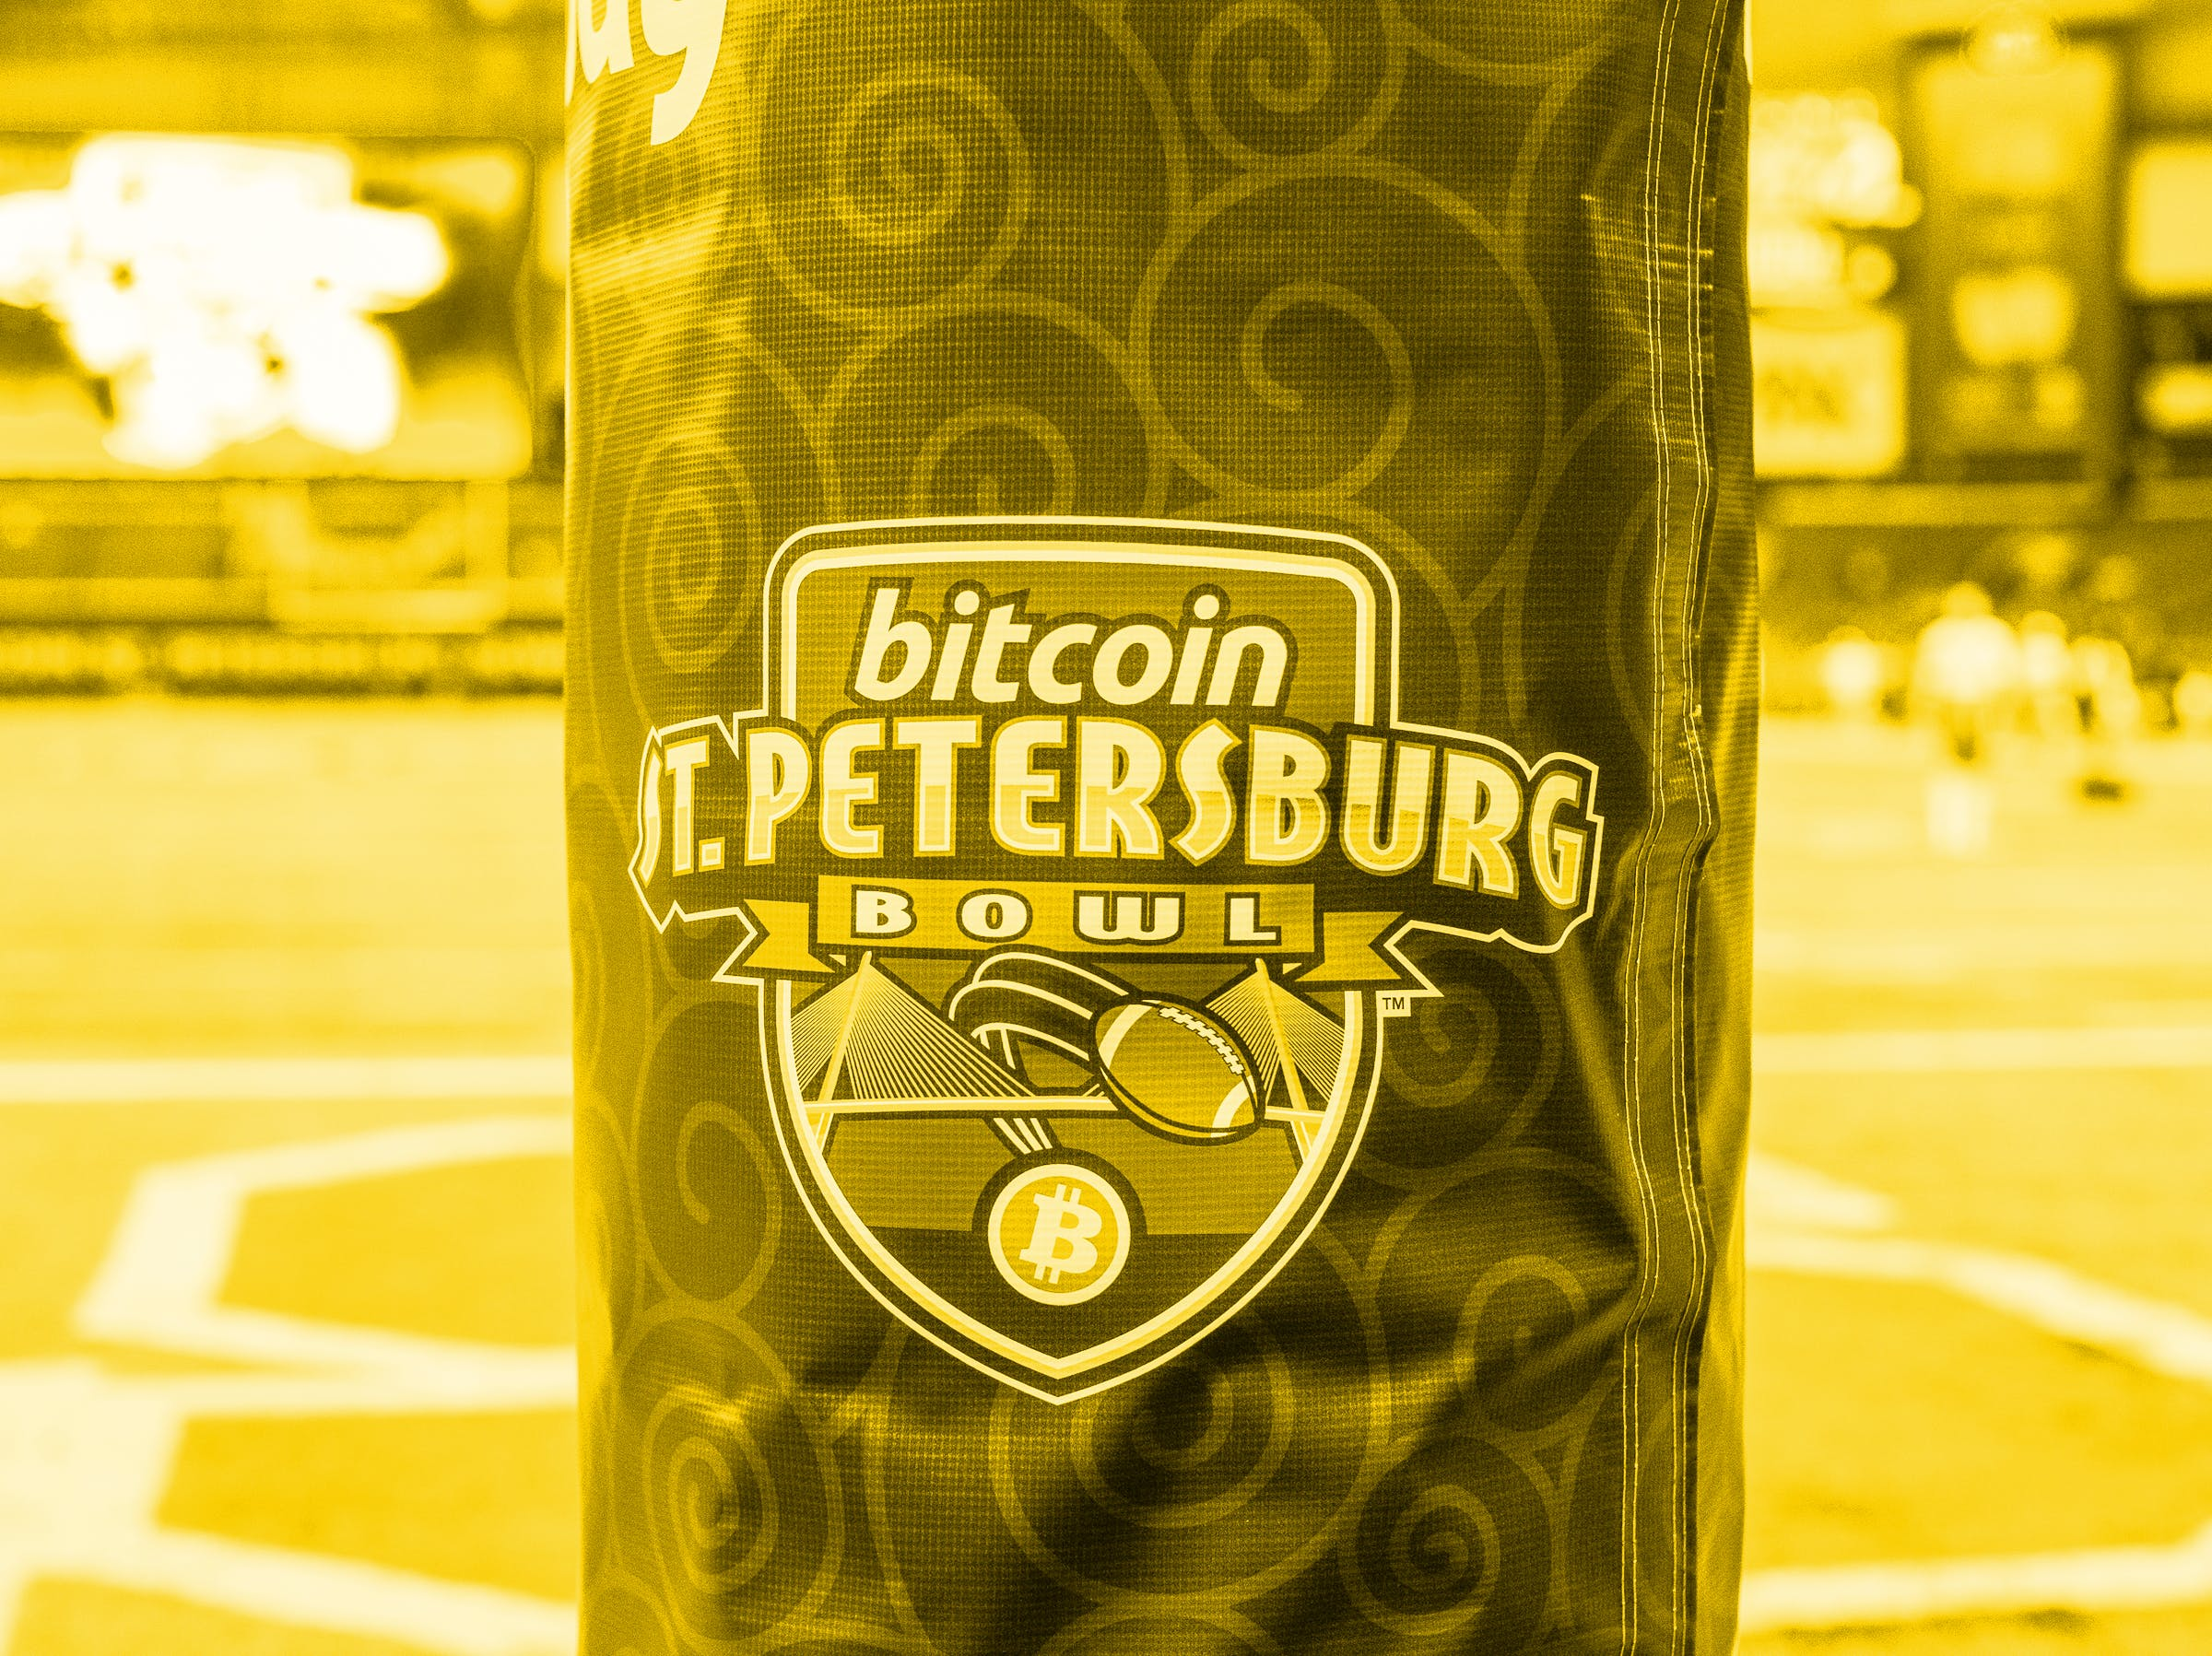 St. Petersburg Bitcoin Bowl